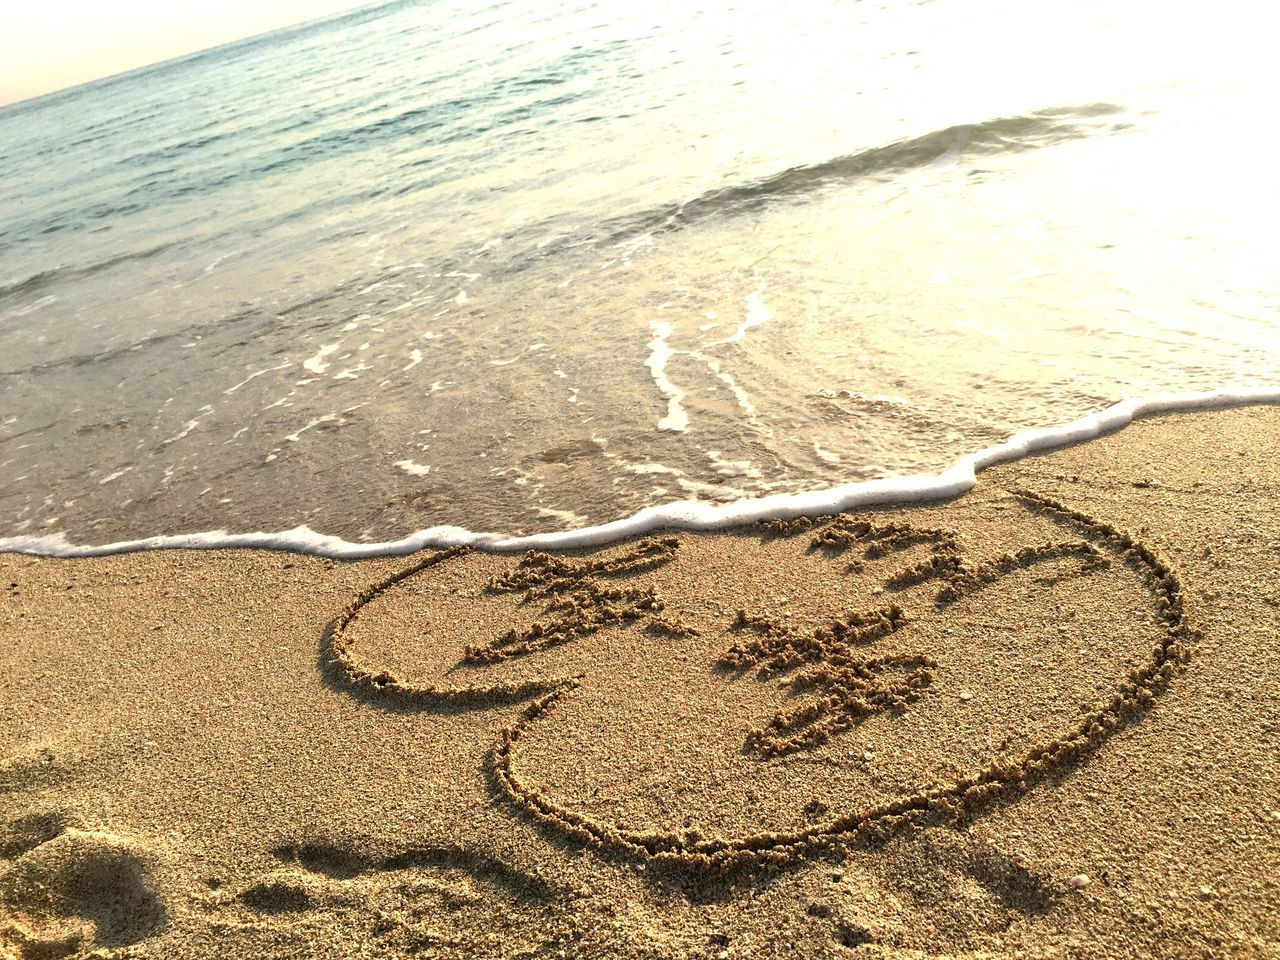 sand, beach, shore, heart shape, nature, text, day, no people, outdoors, sea, communication, water, close-up, beauty in nature